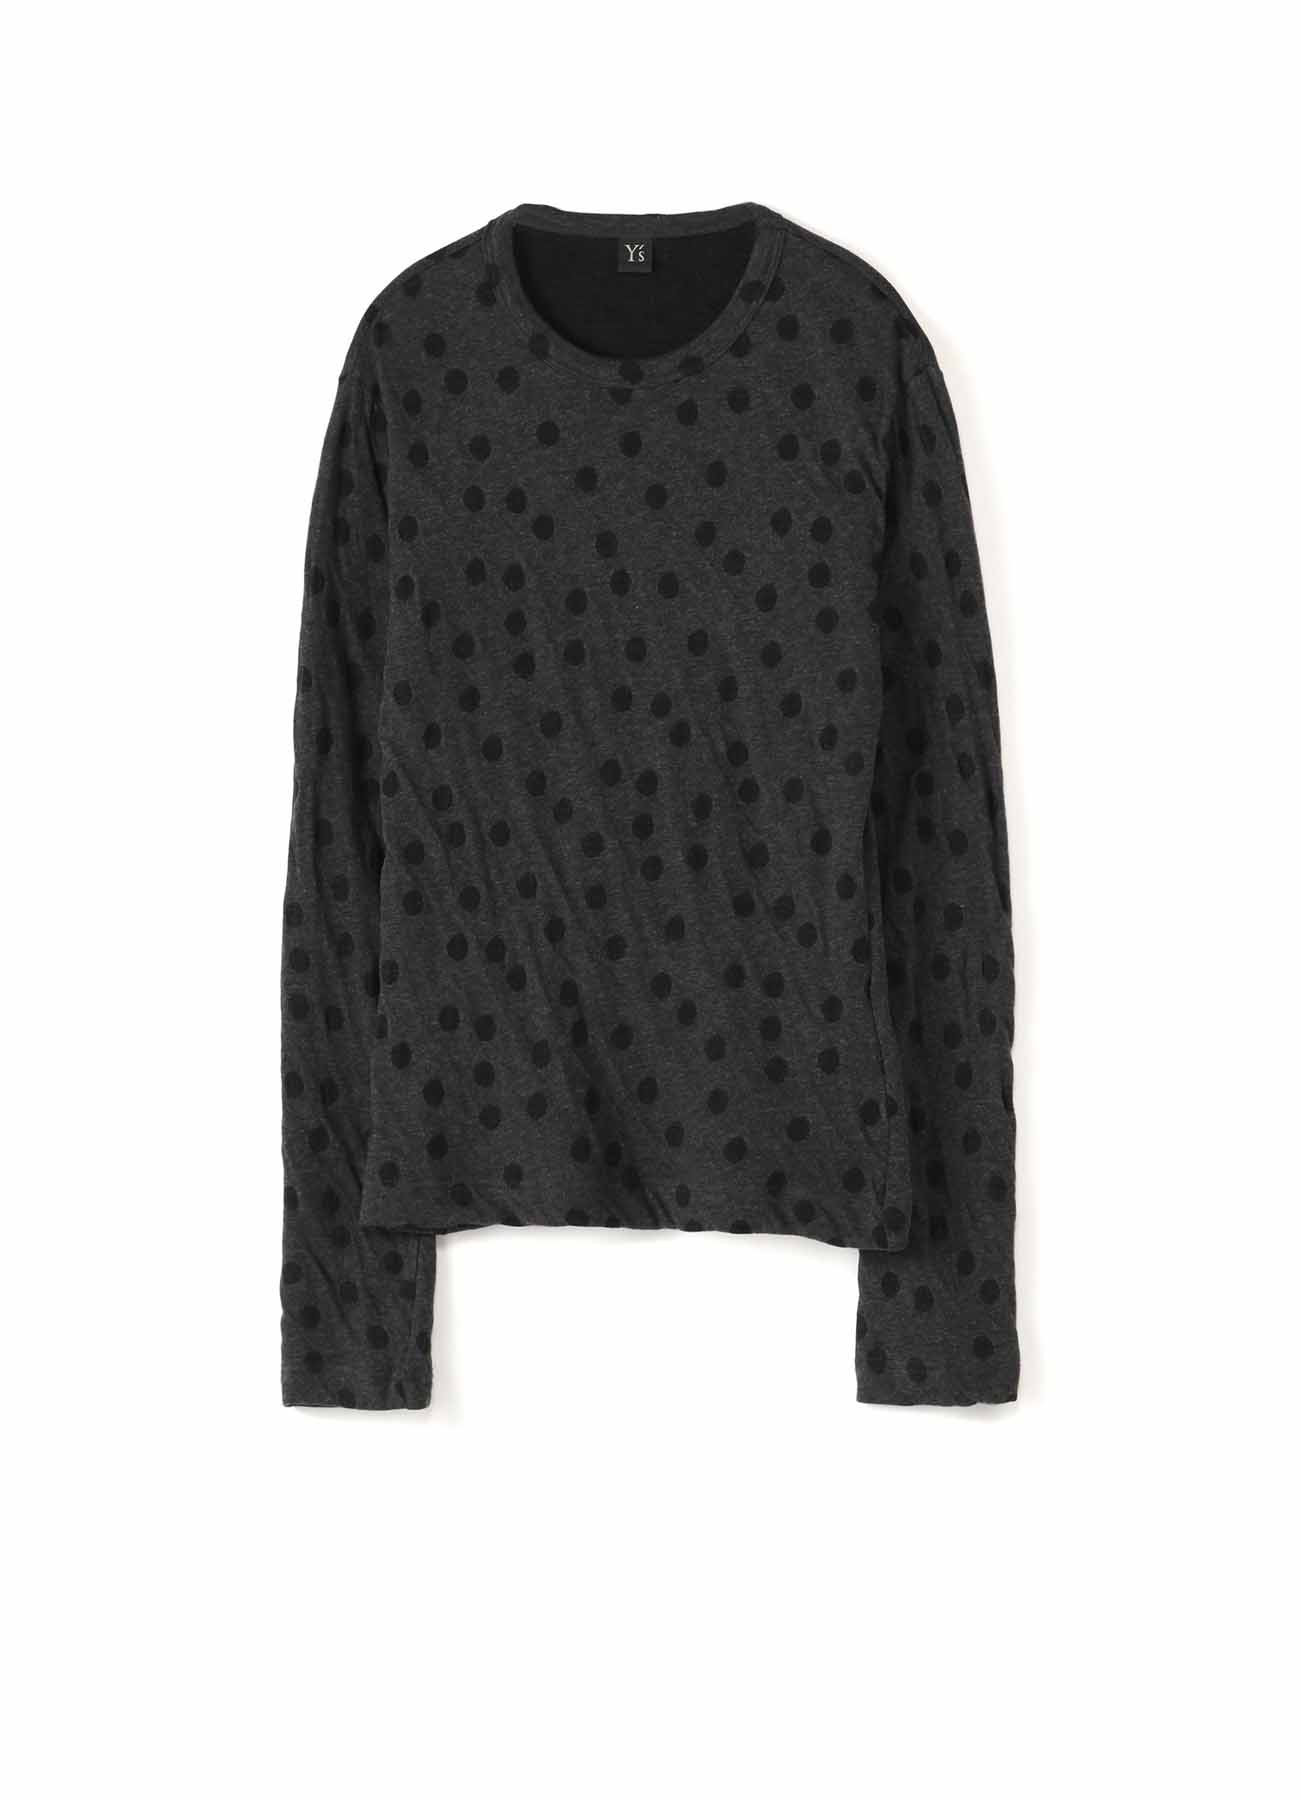 LYOCELL COTTON DOT DUAL-LAYER JACQUARD ROUND NECK LONG SLEEVE T-SHIRT